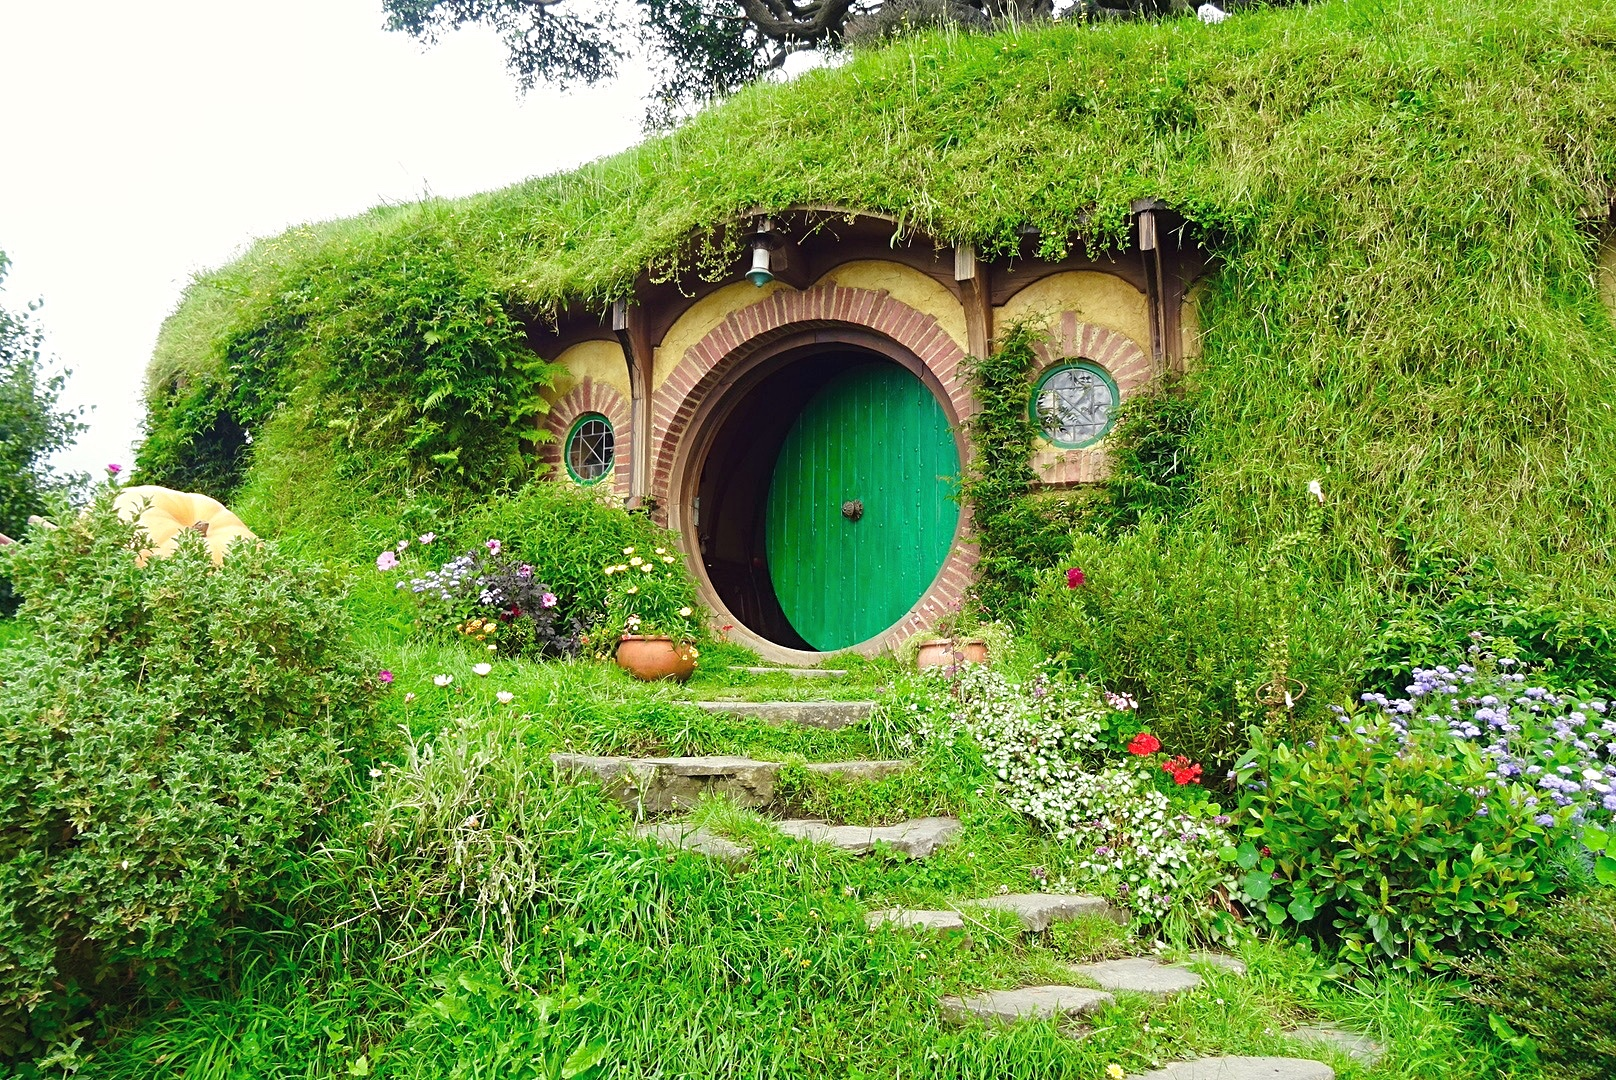 Bilbo's House, Hobbiton, New Zealand